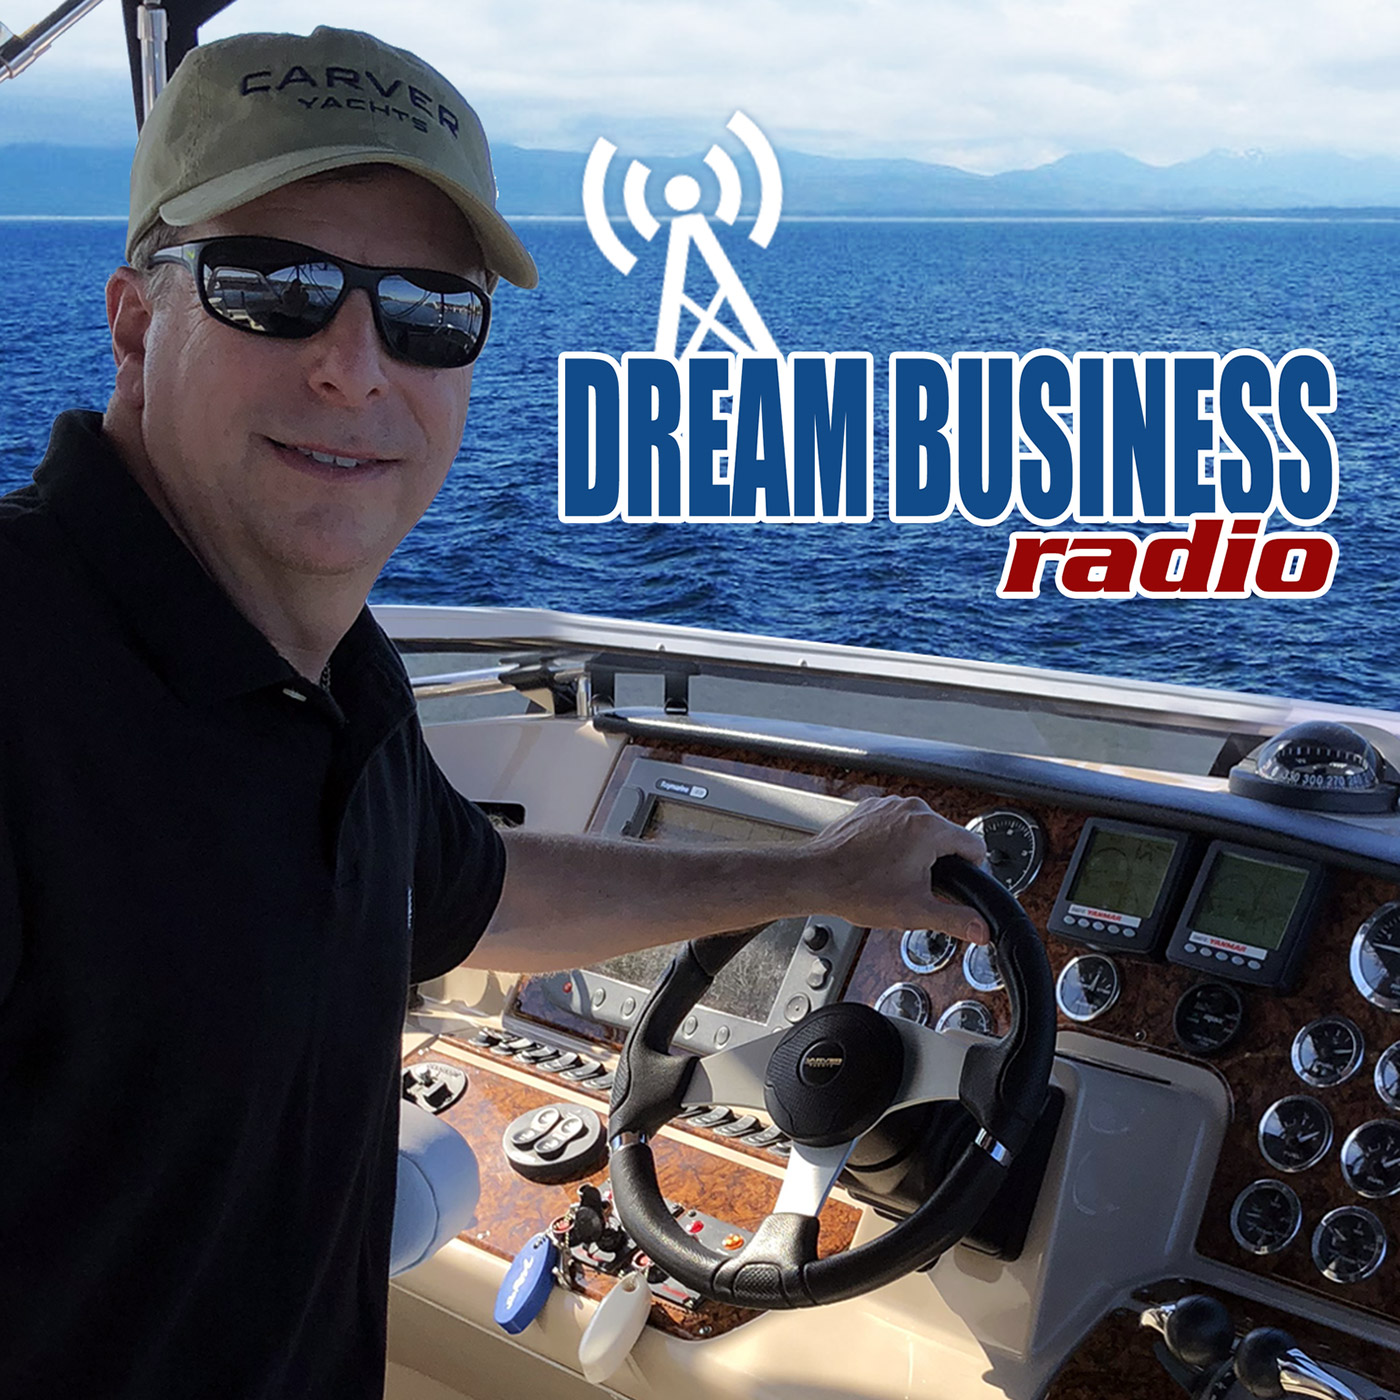 Dream Business Radio